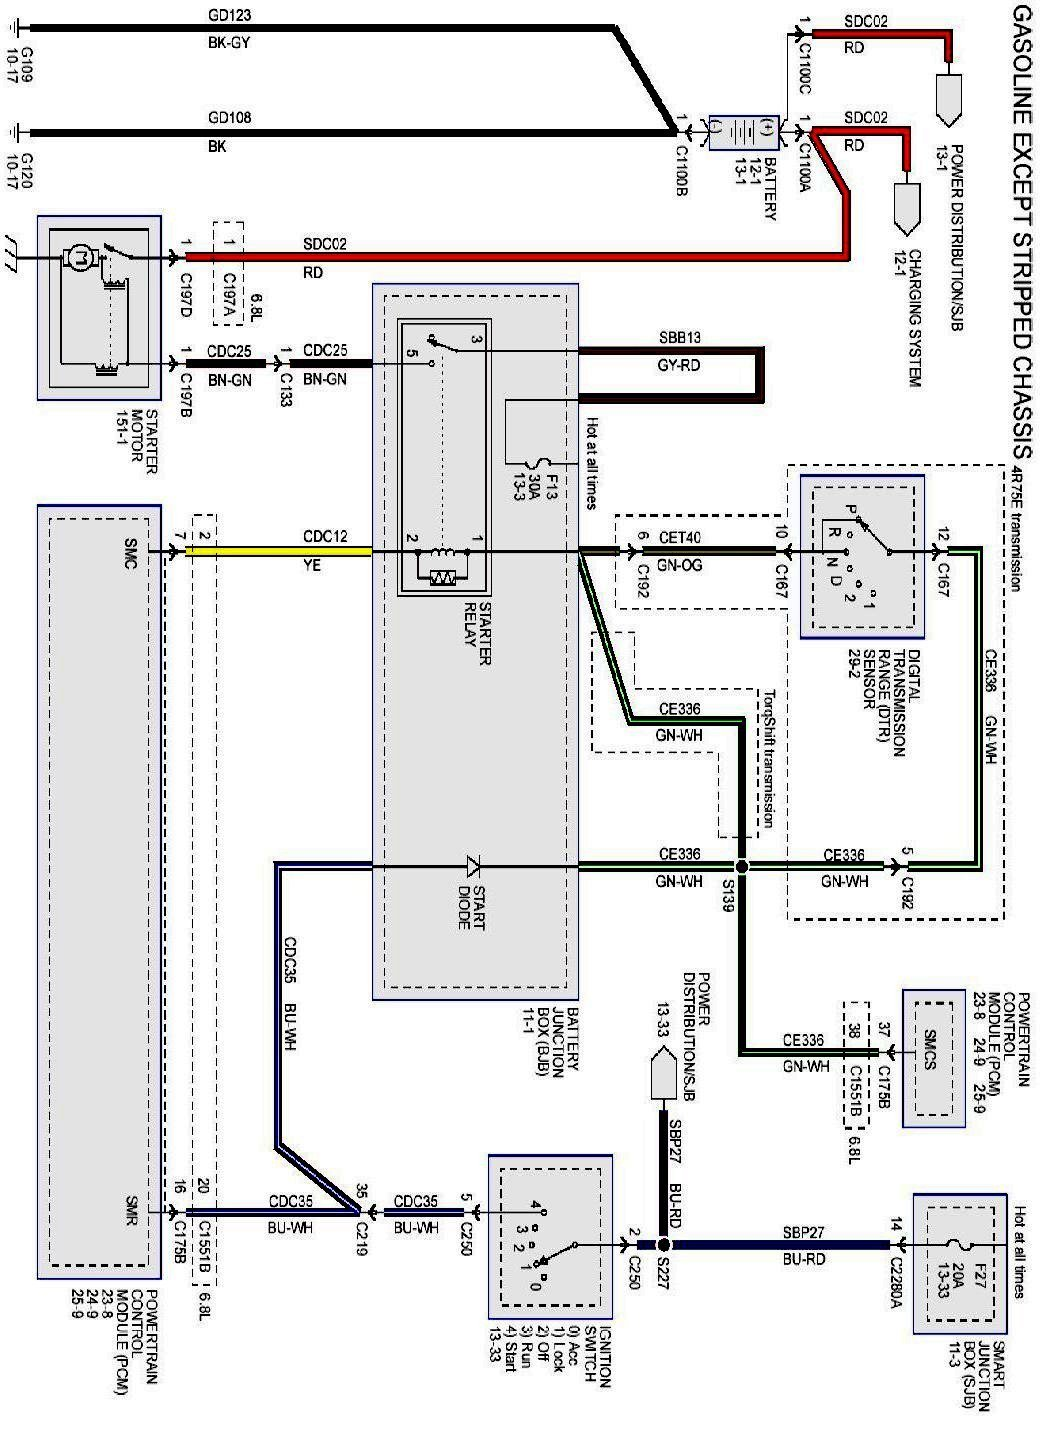 2014 E 450 Fuse Box Diagram Wiring Library 2013 Ford F250 Summary U003e Eseries E450 1995 F 250